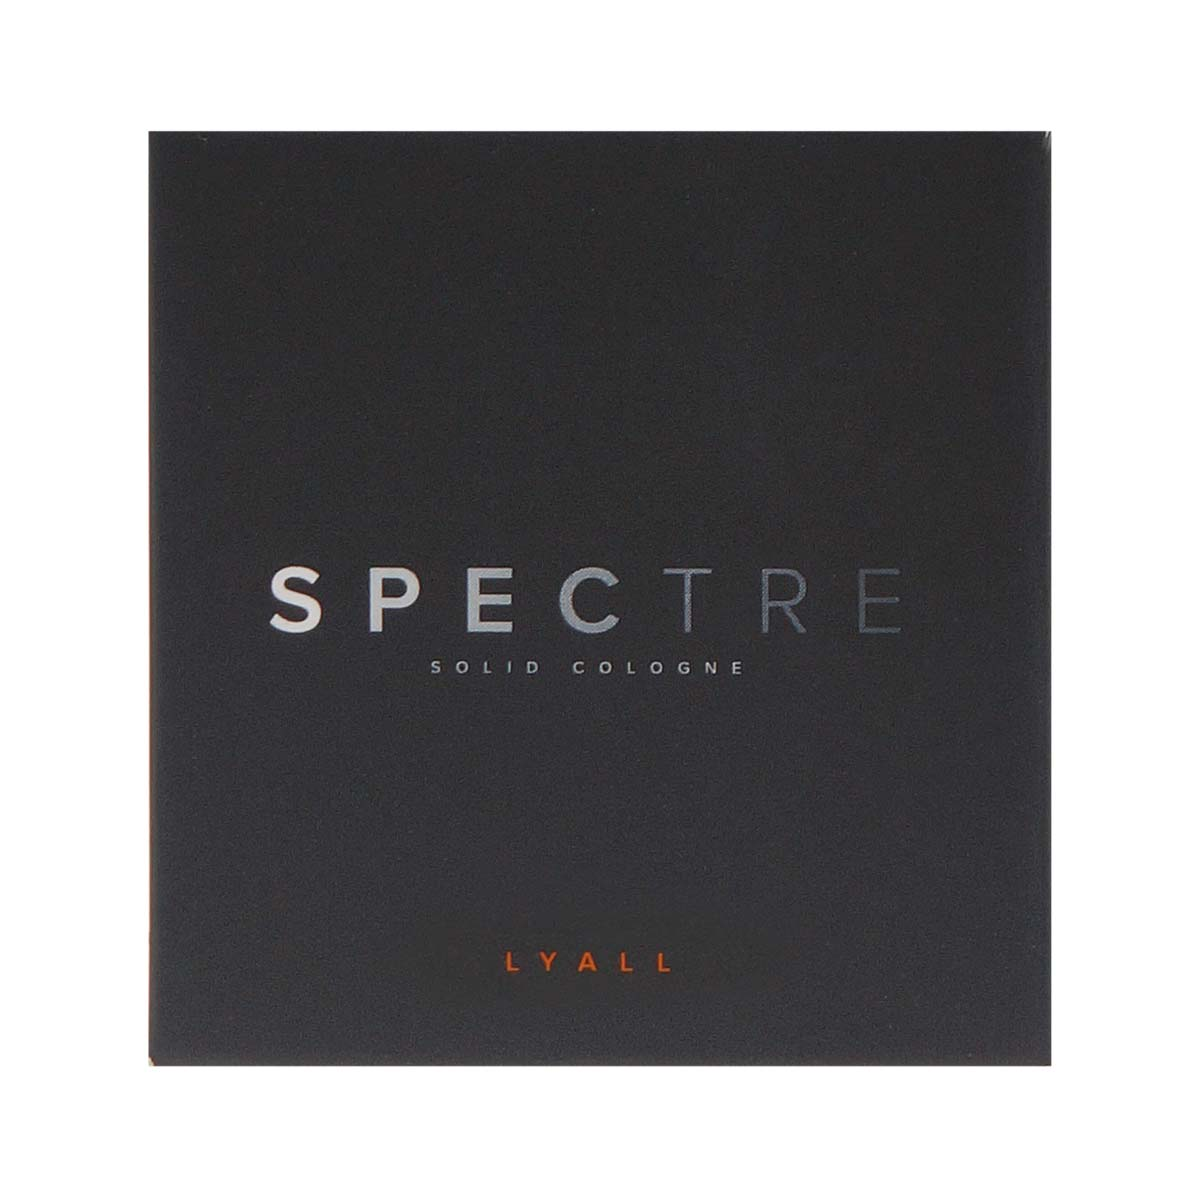 Spectre Lyall Solid Cologne 25g